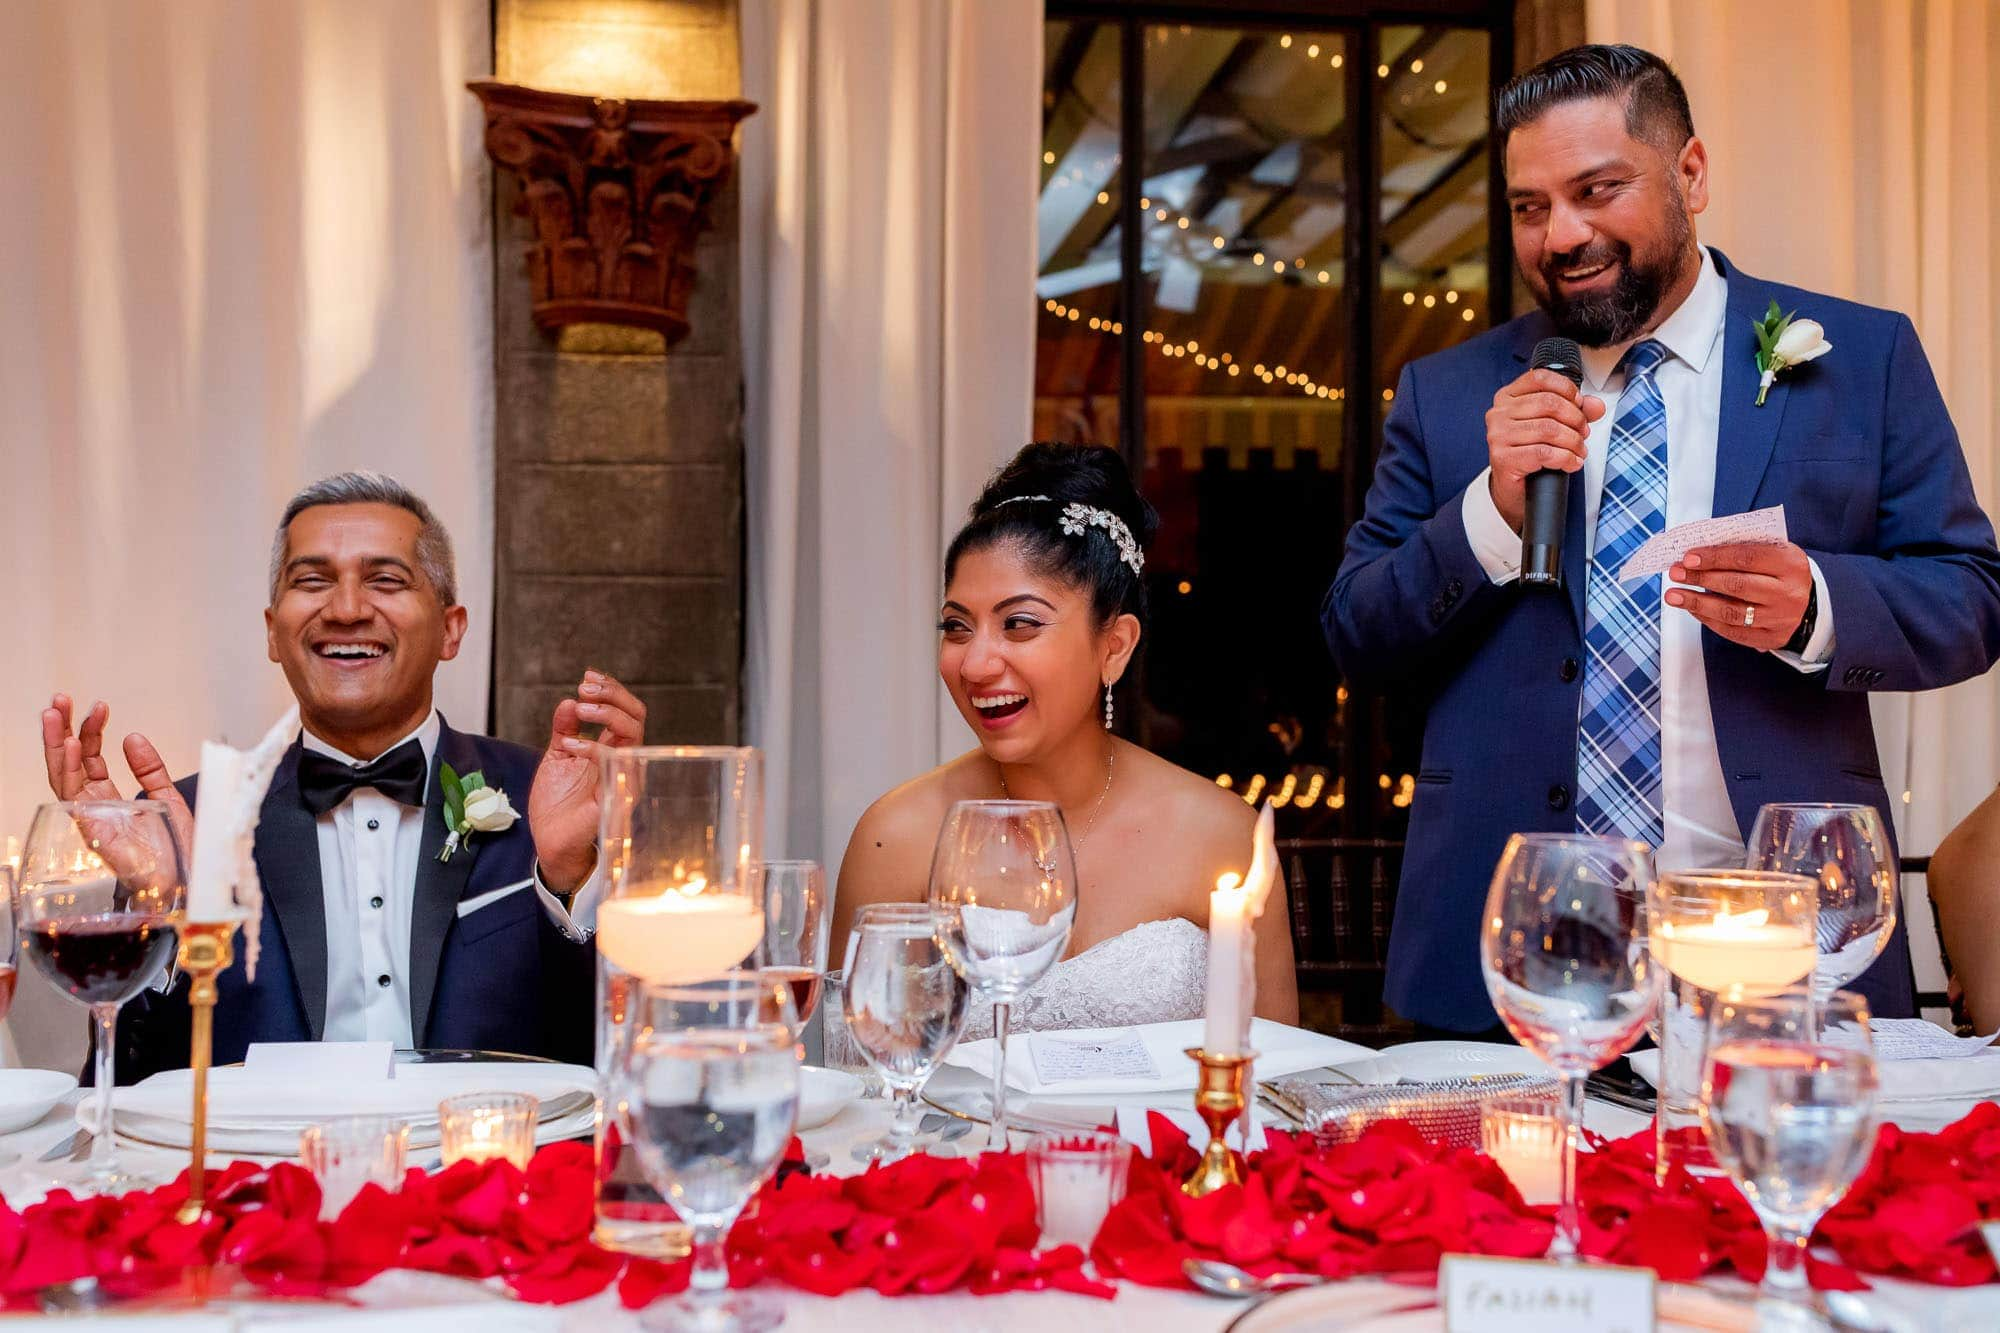 The bride and groom laughing at the best man's toast